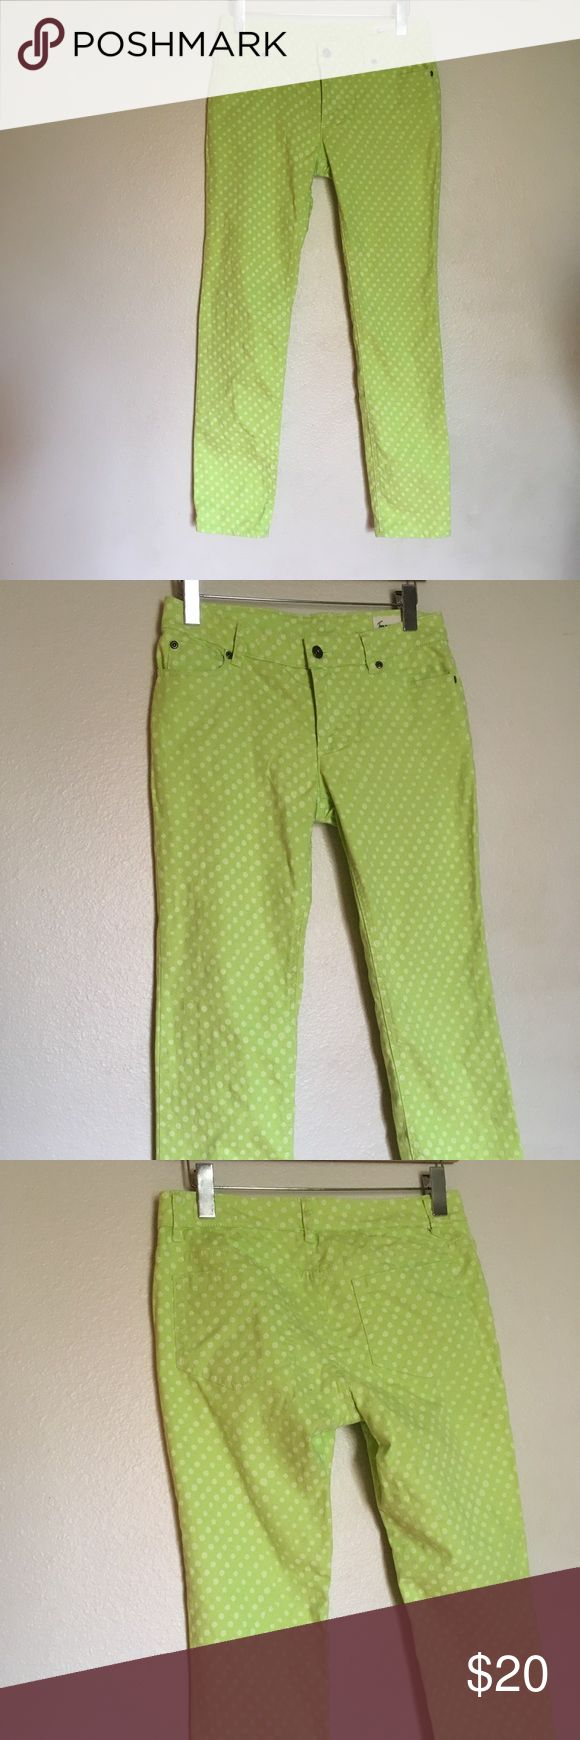 Two by Vince Camuto pants Lime green pants with white polka dots Two by Vince Camuto Jeans